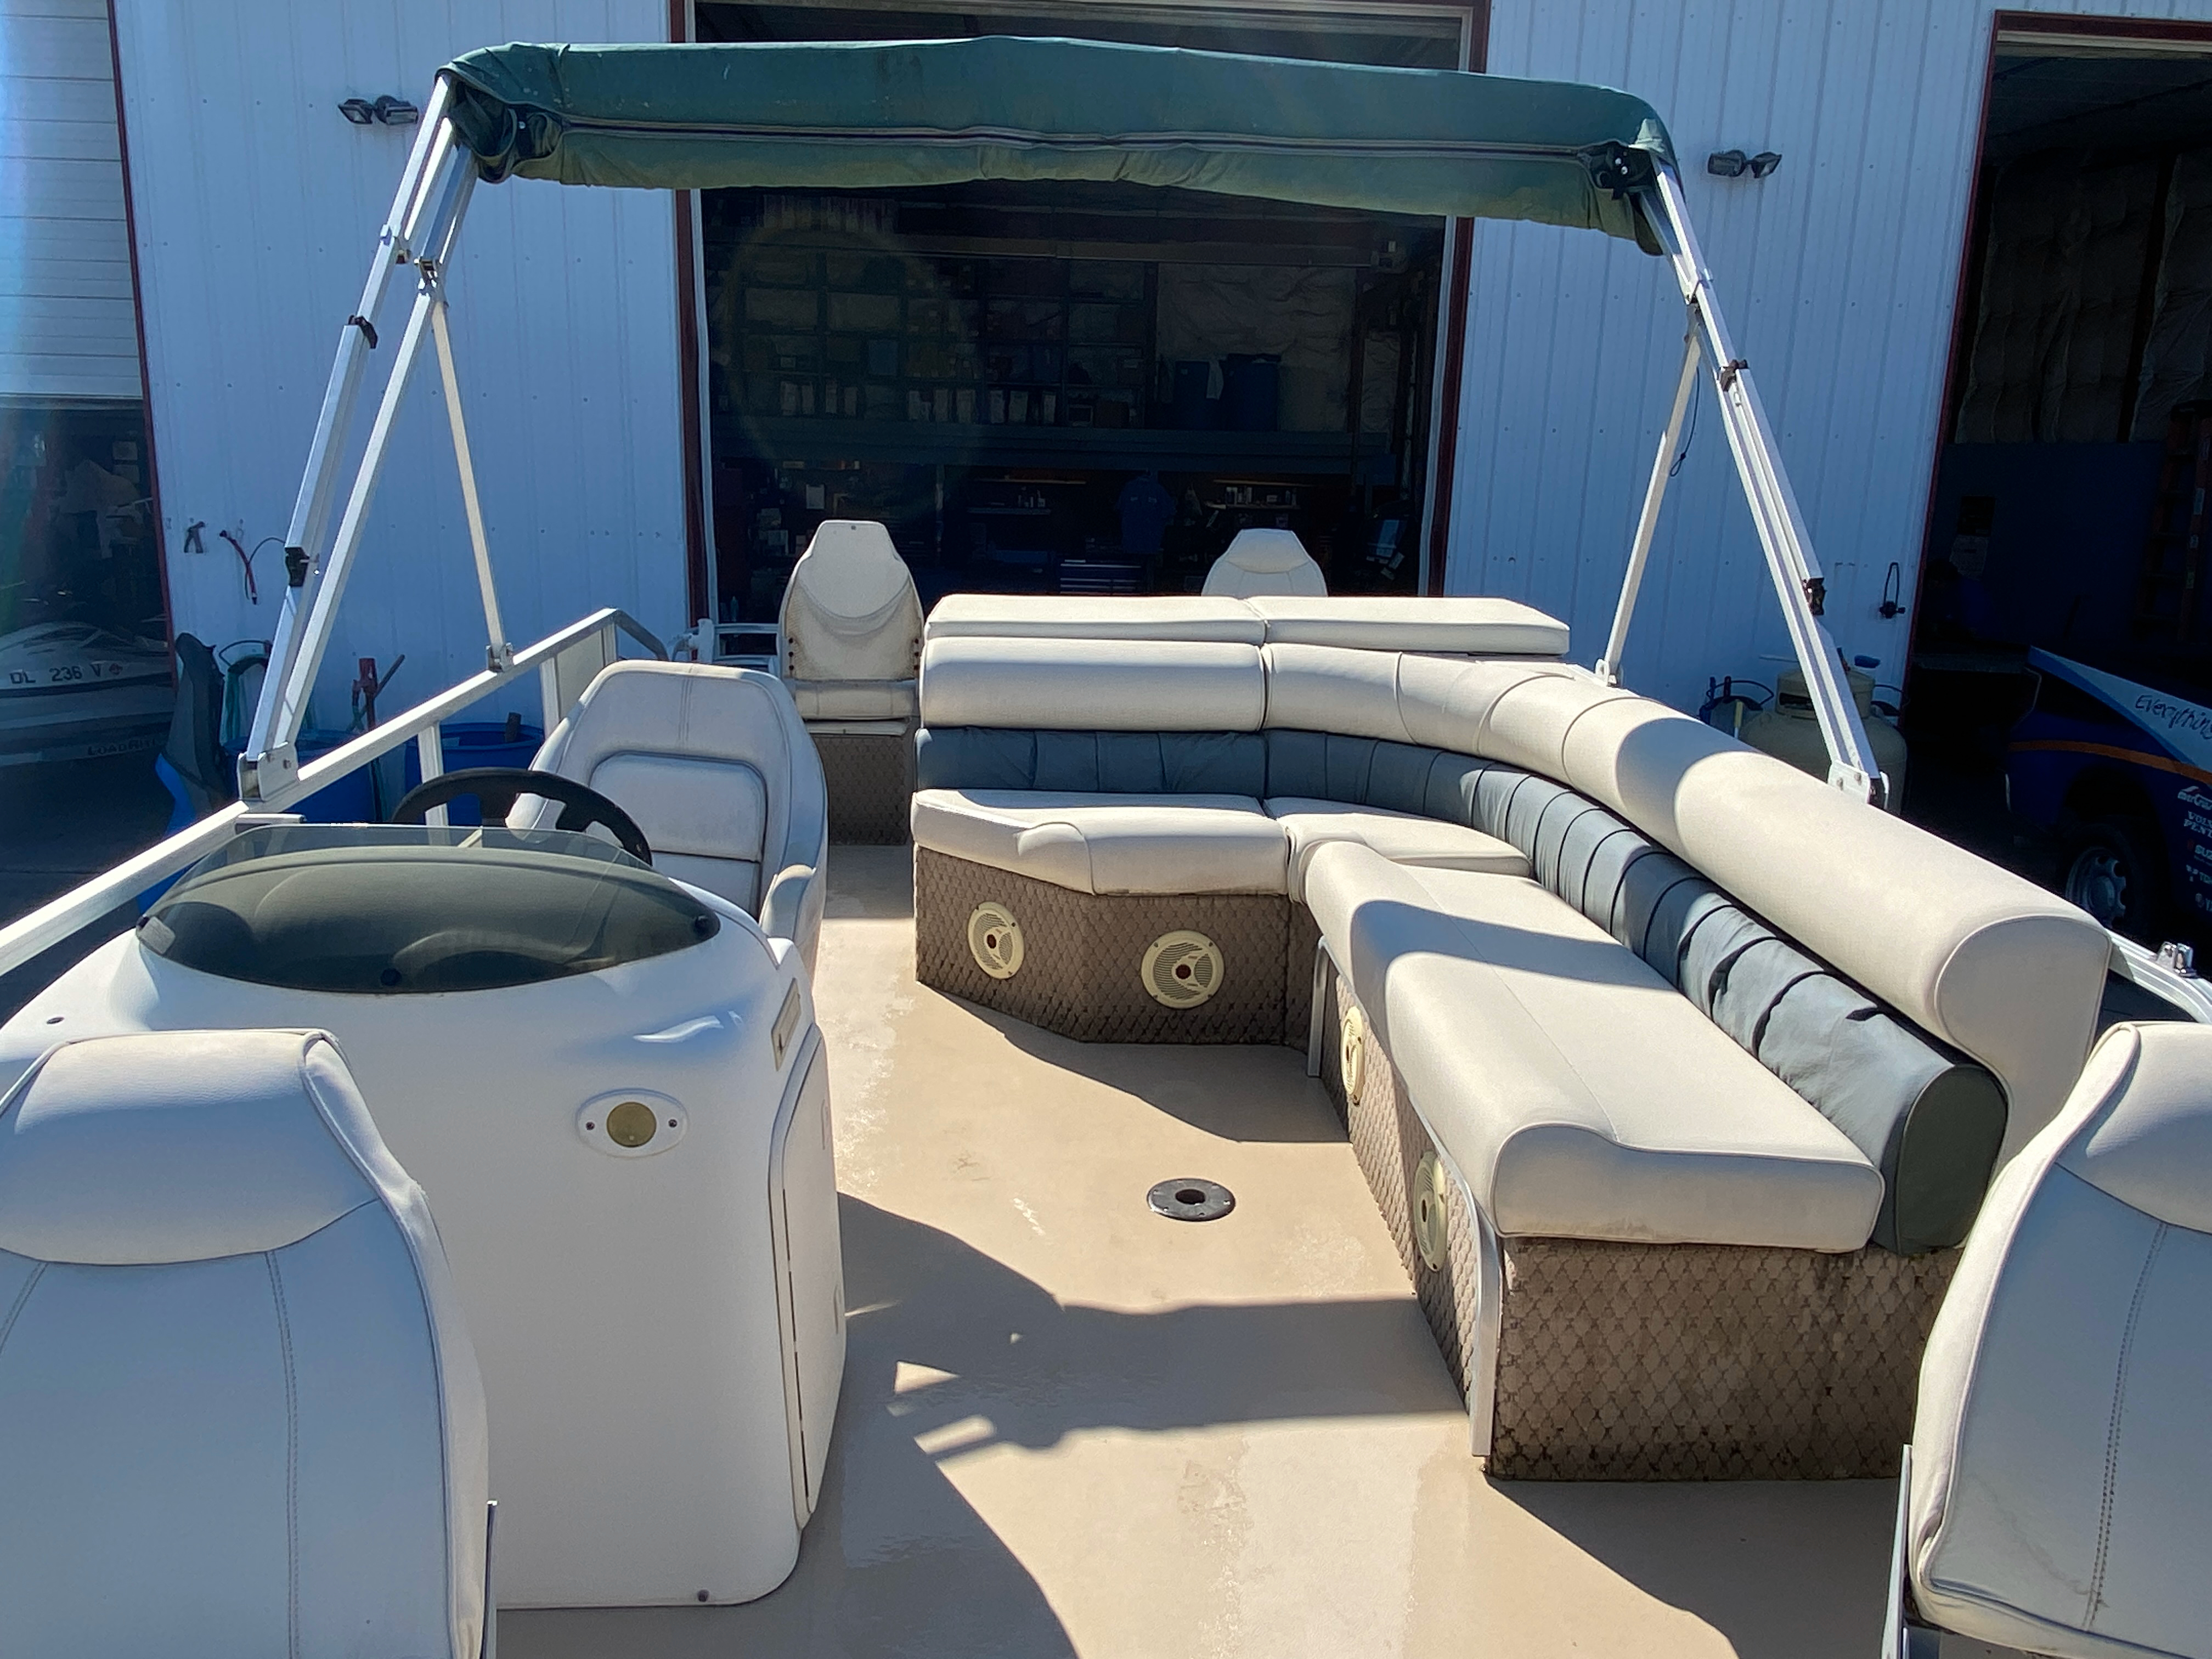 2002 Tahoe boat for sale, model of the boat is Grand Tahoe FNF & Image # 7 of 10